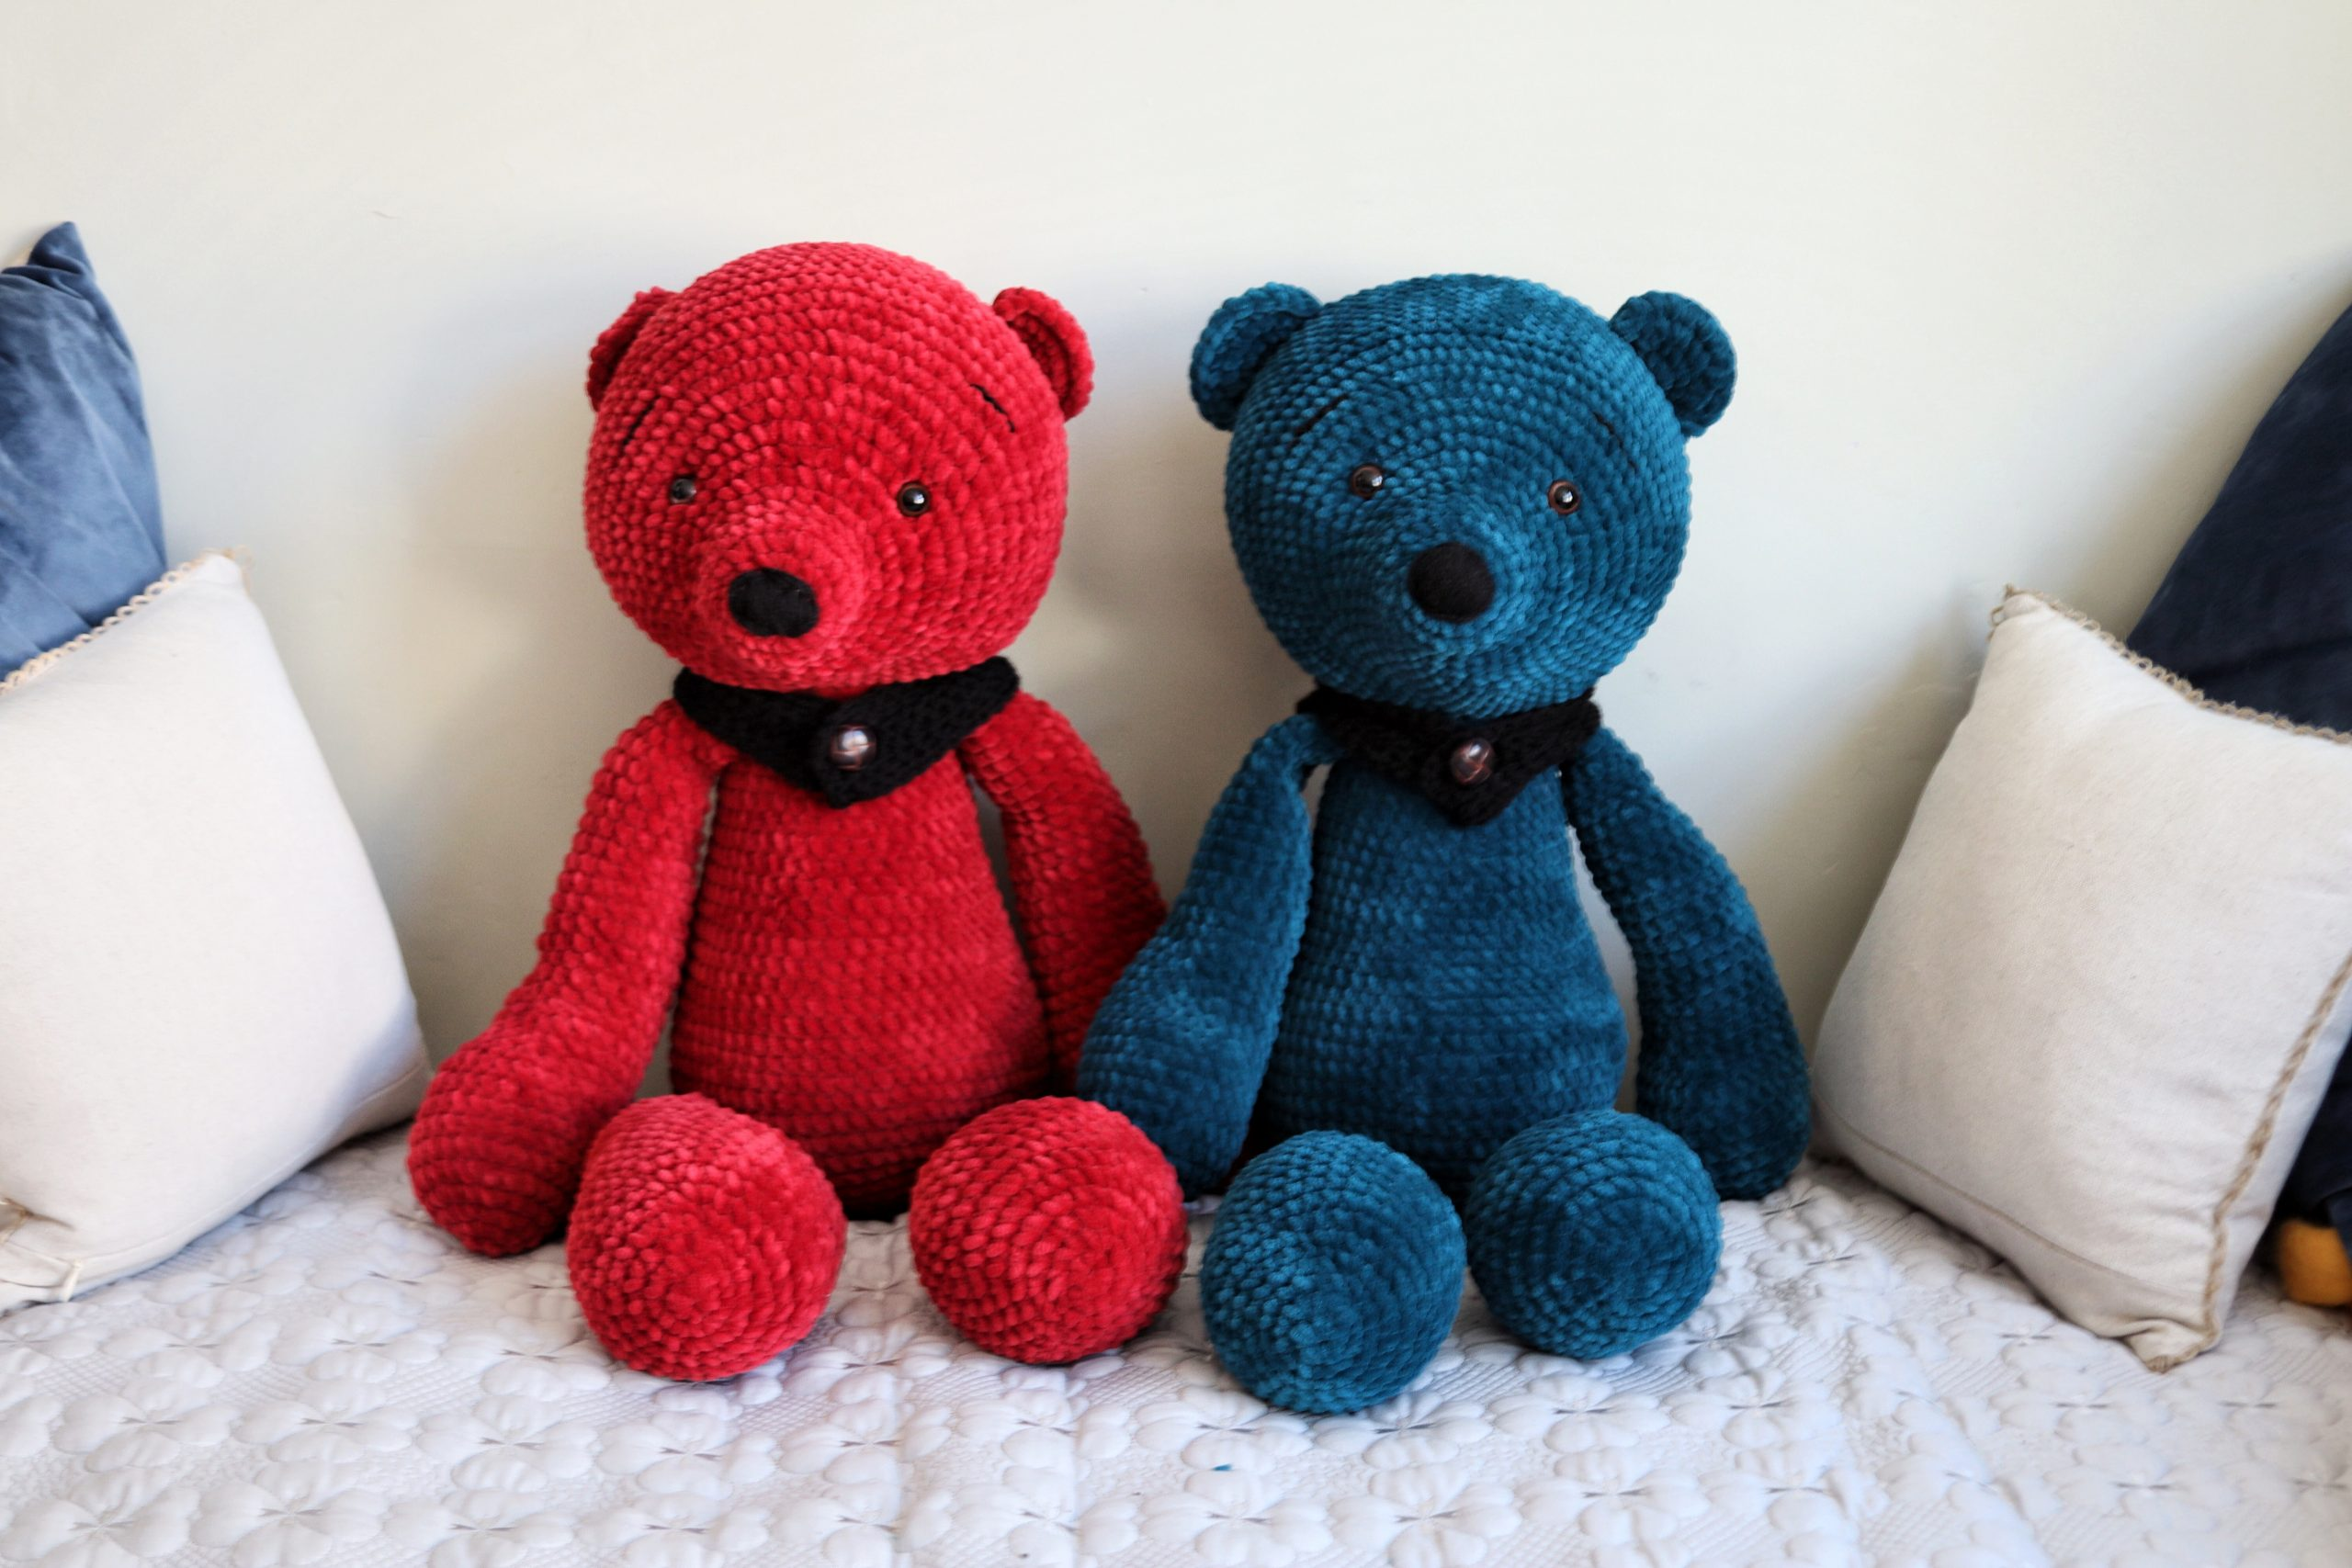 Giant Crochet Teddy Bears! Find out how to make these gorgeous bears in this blog post!